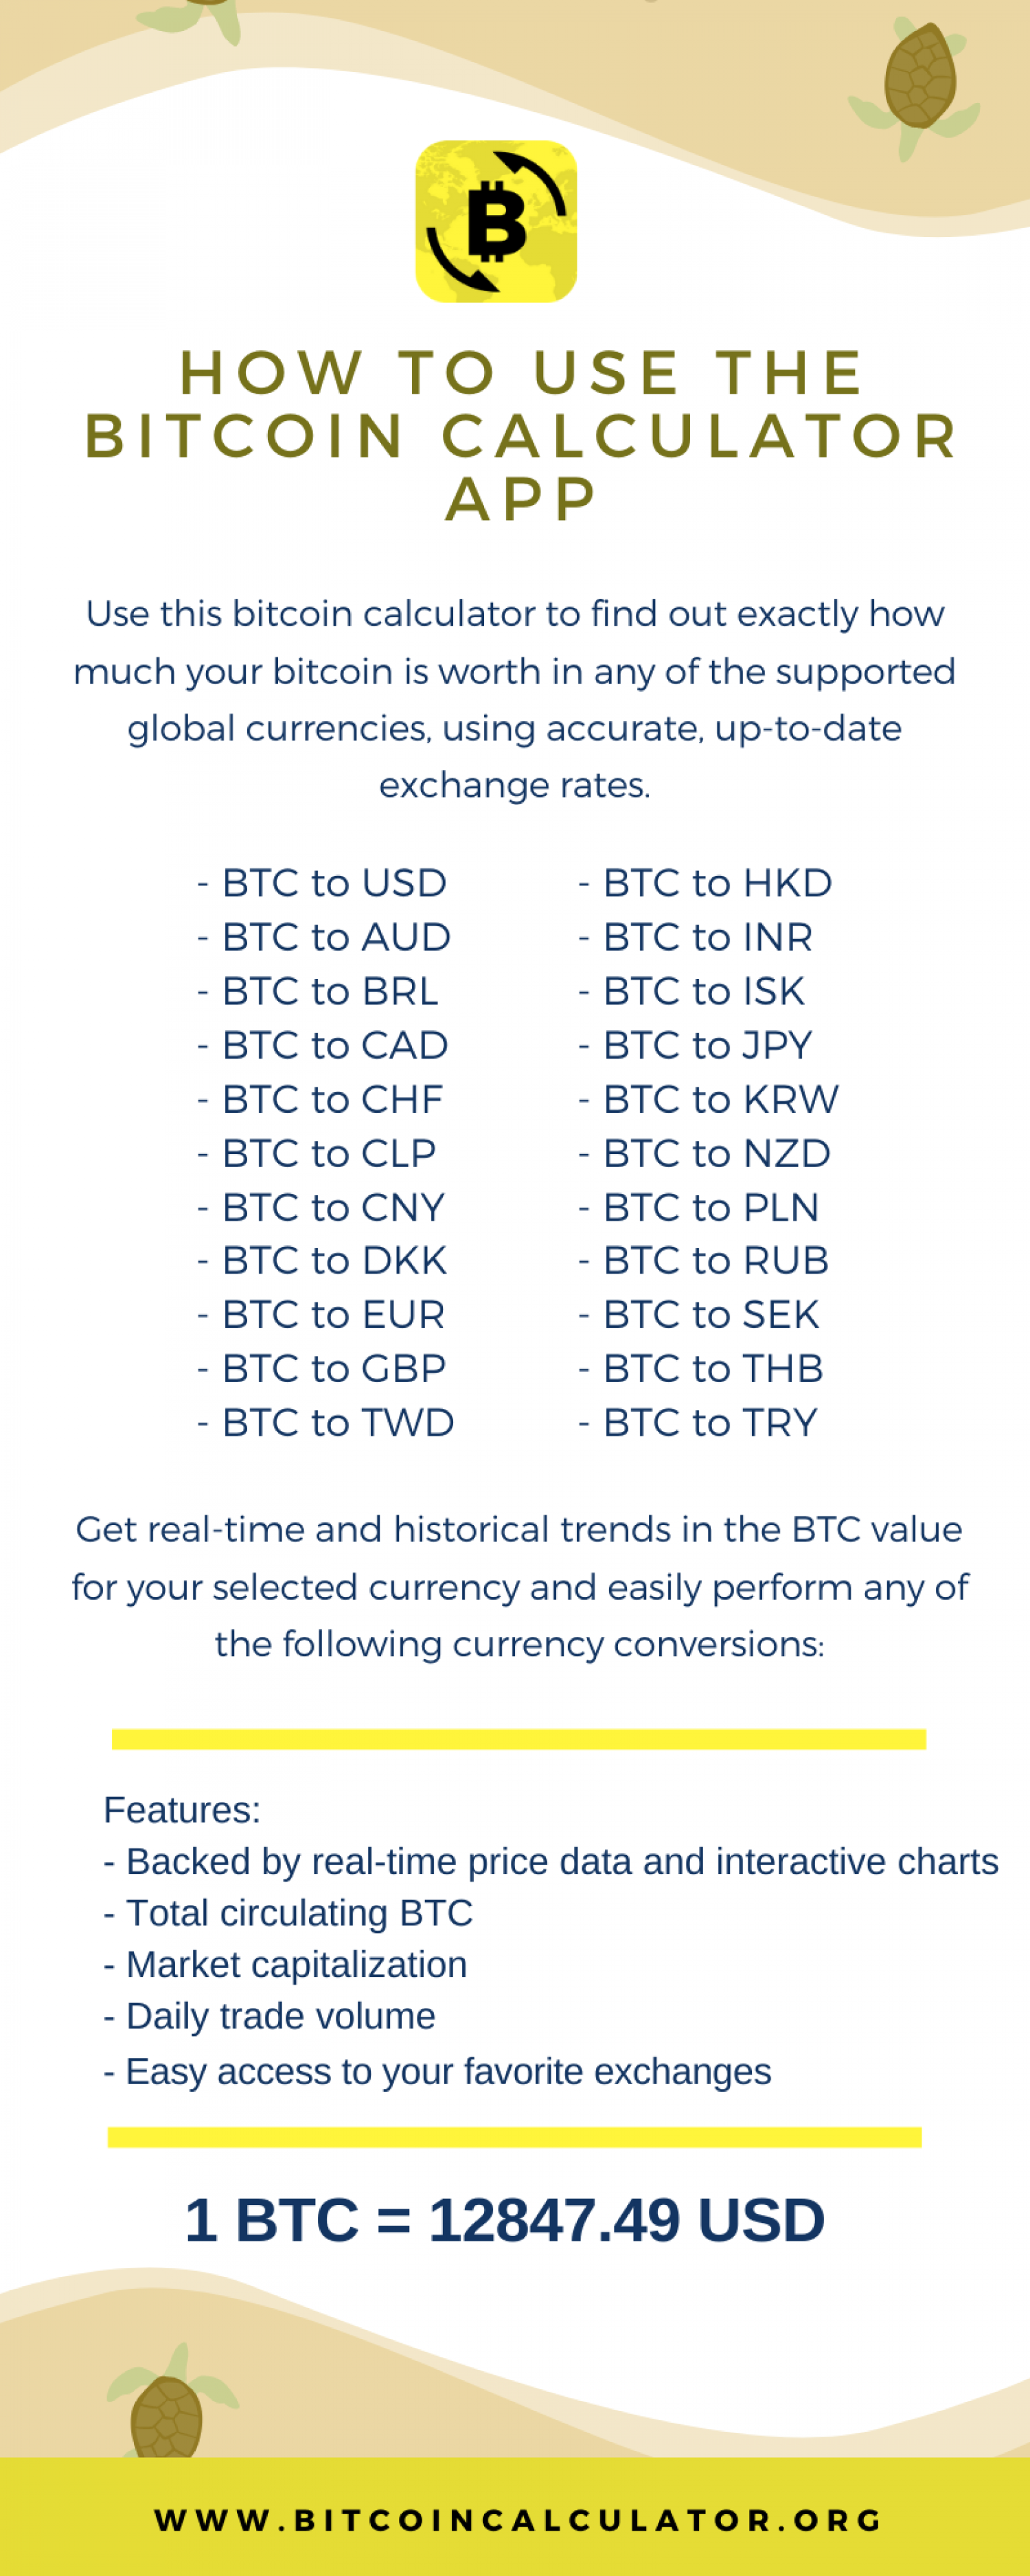 How To Use The Bitcoin Calculator App Infographic